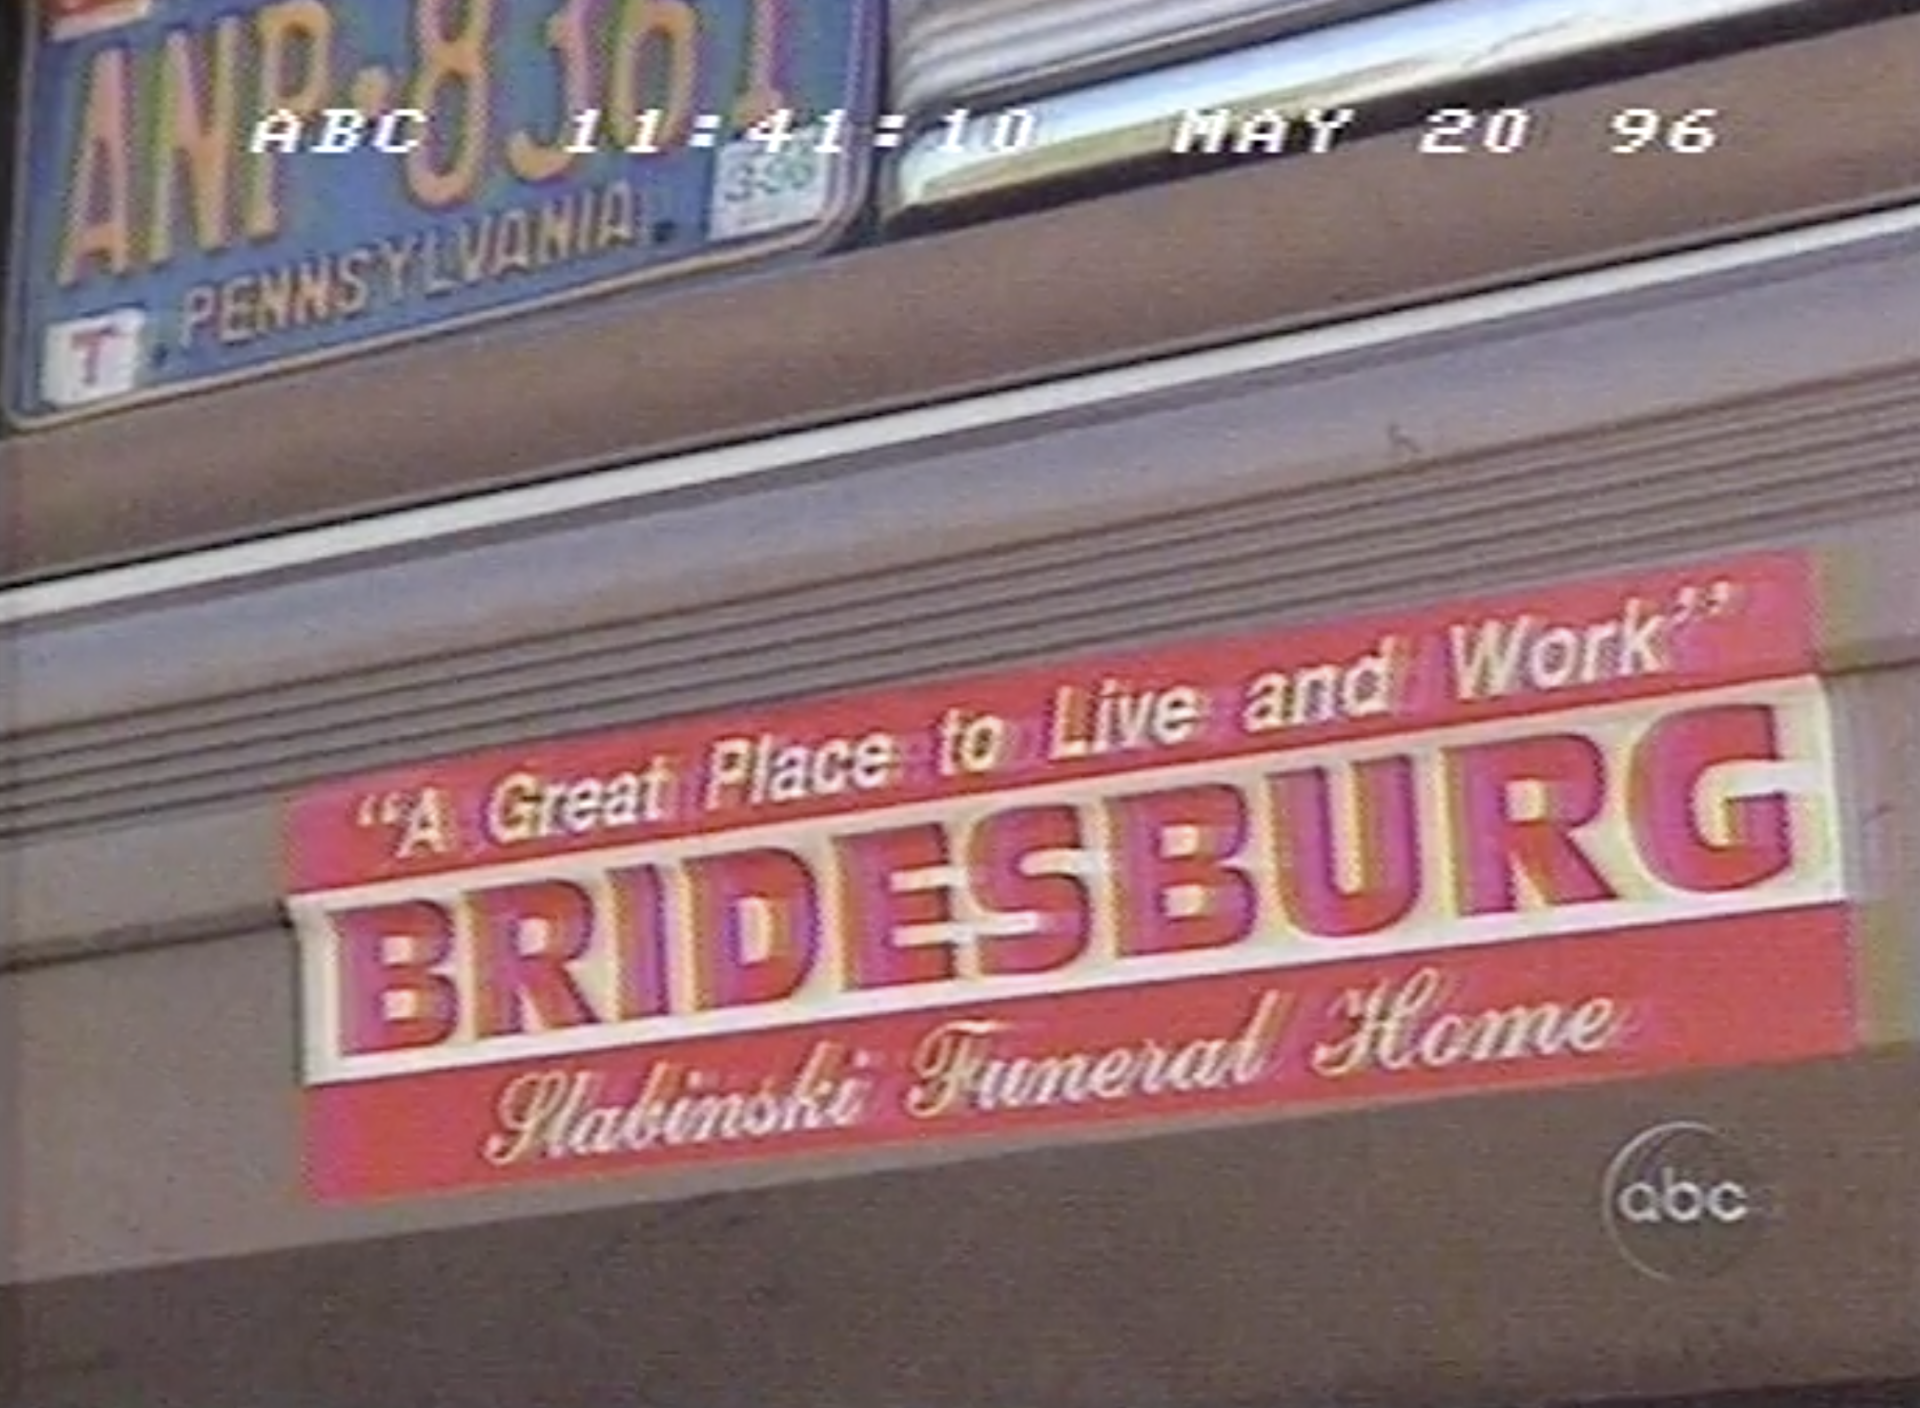 A bumper-sticker for the Slabinski Funeral Home appeared in Nightline's 1996 coverage of Bridesburg.